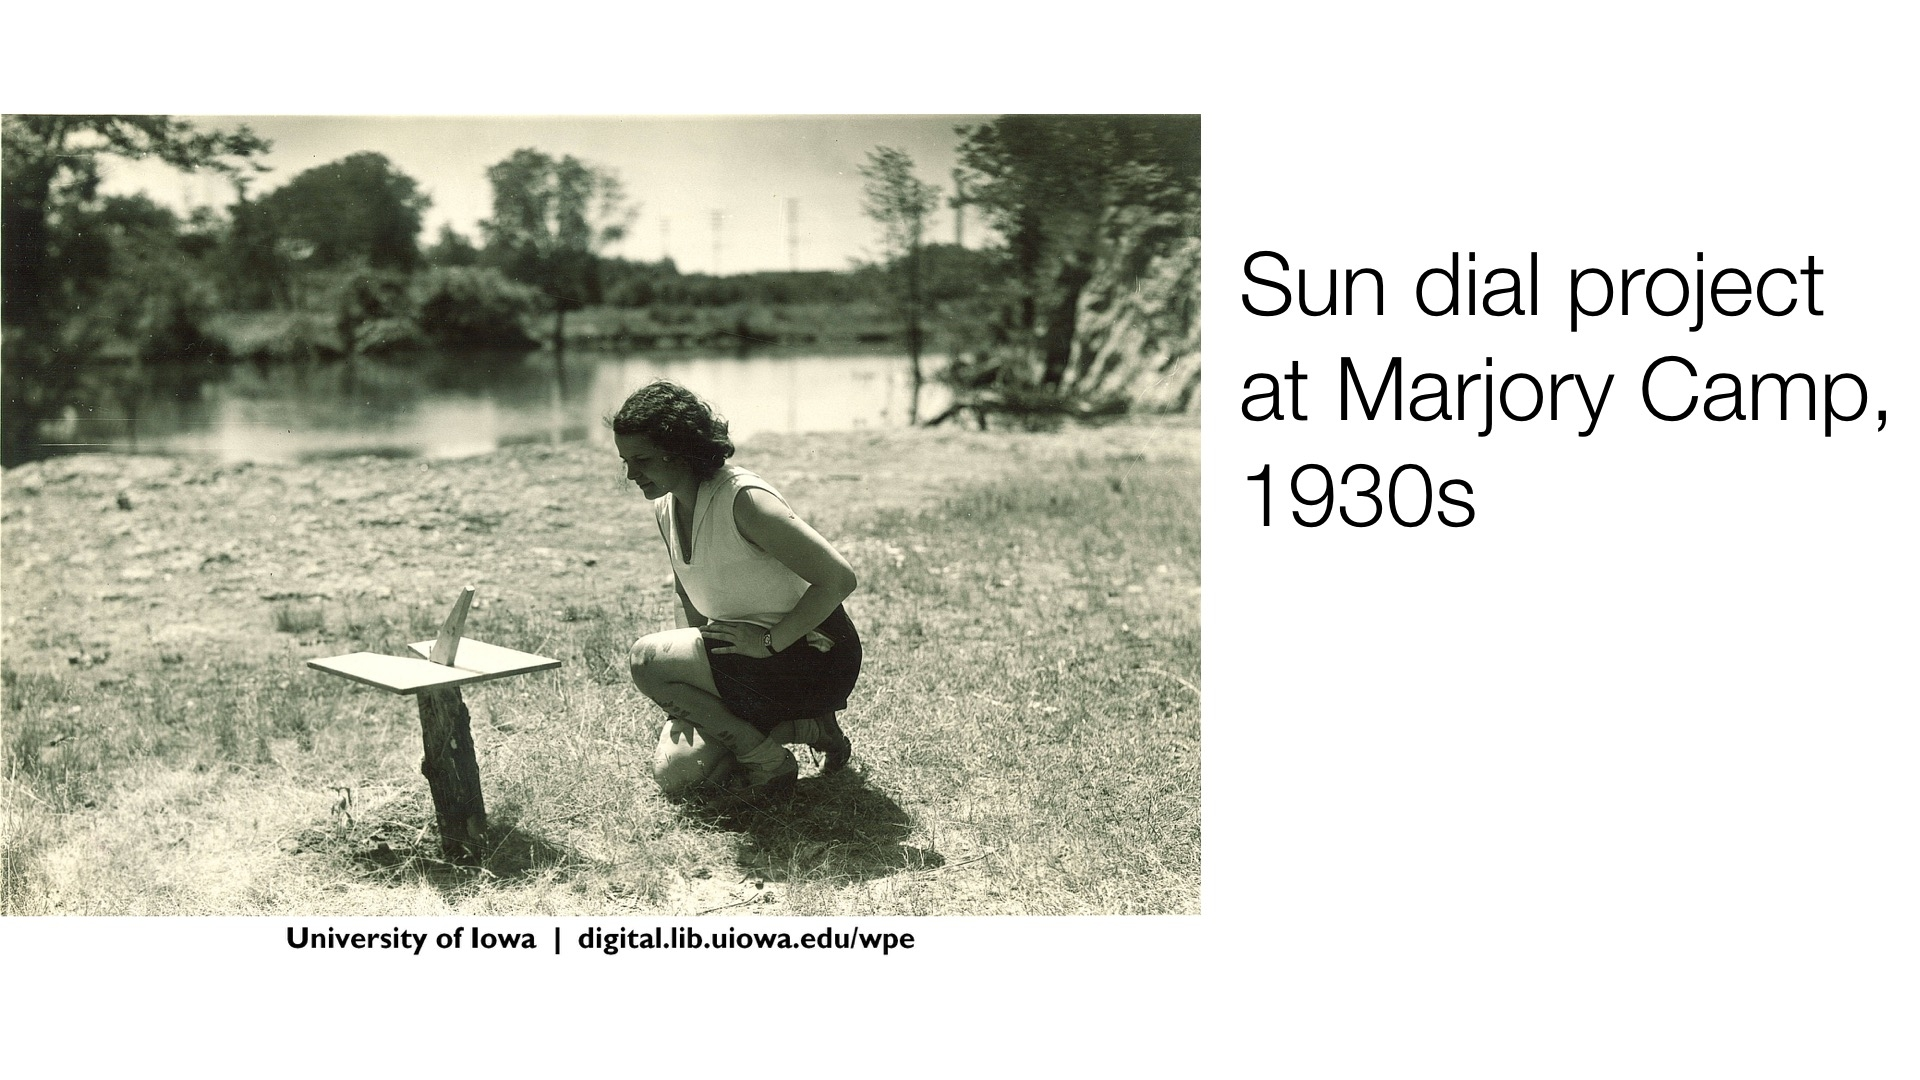 Sun dial project at Marjory Camp, 1930s